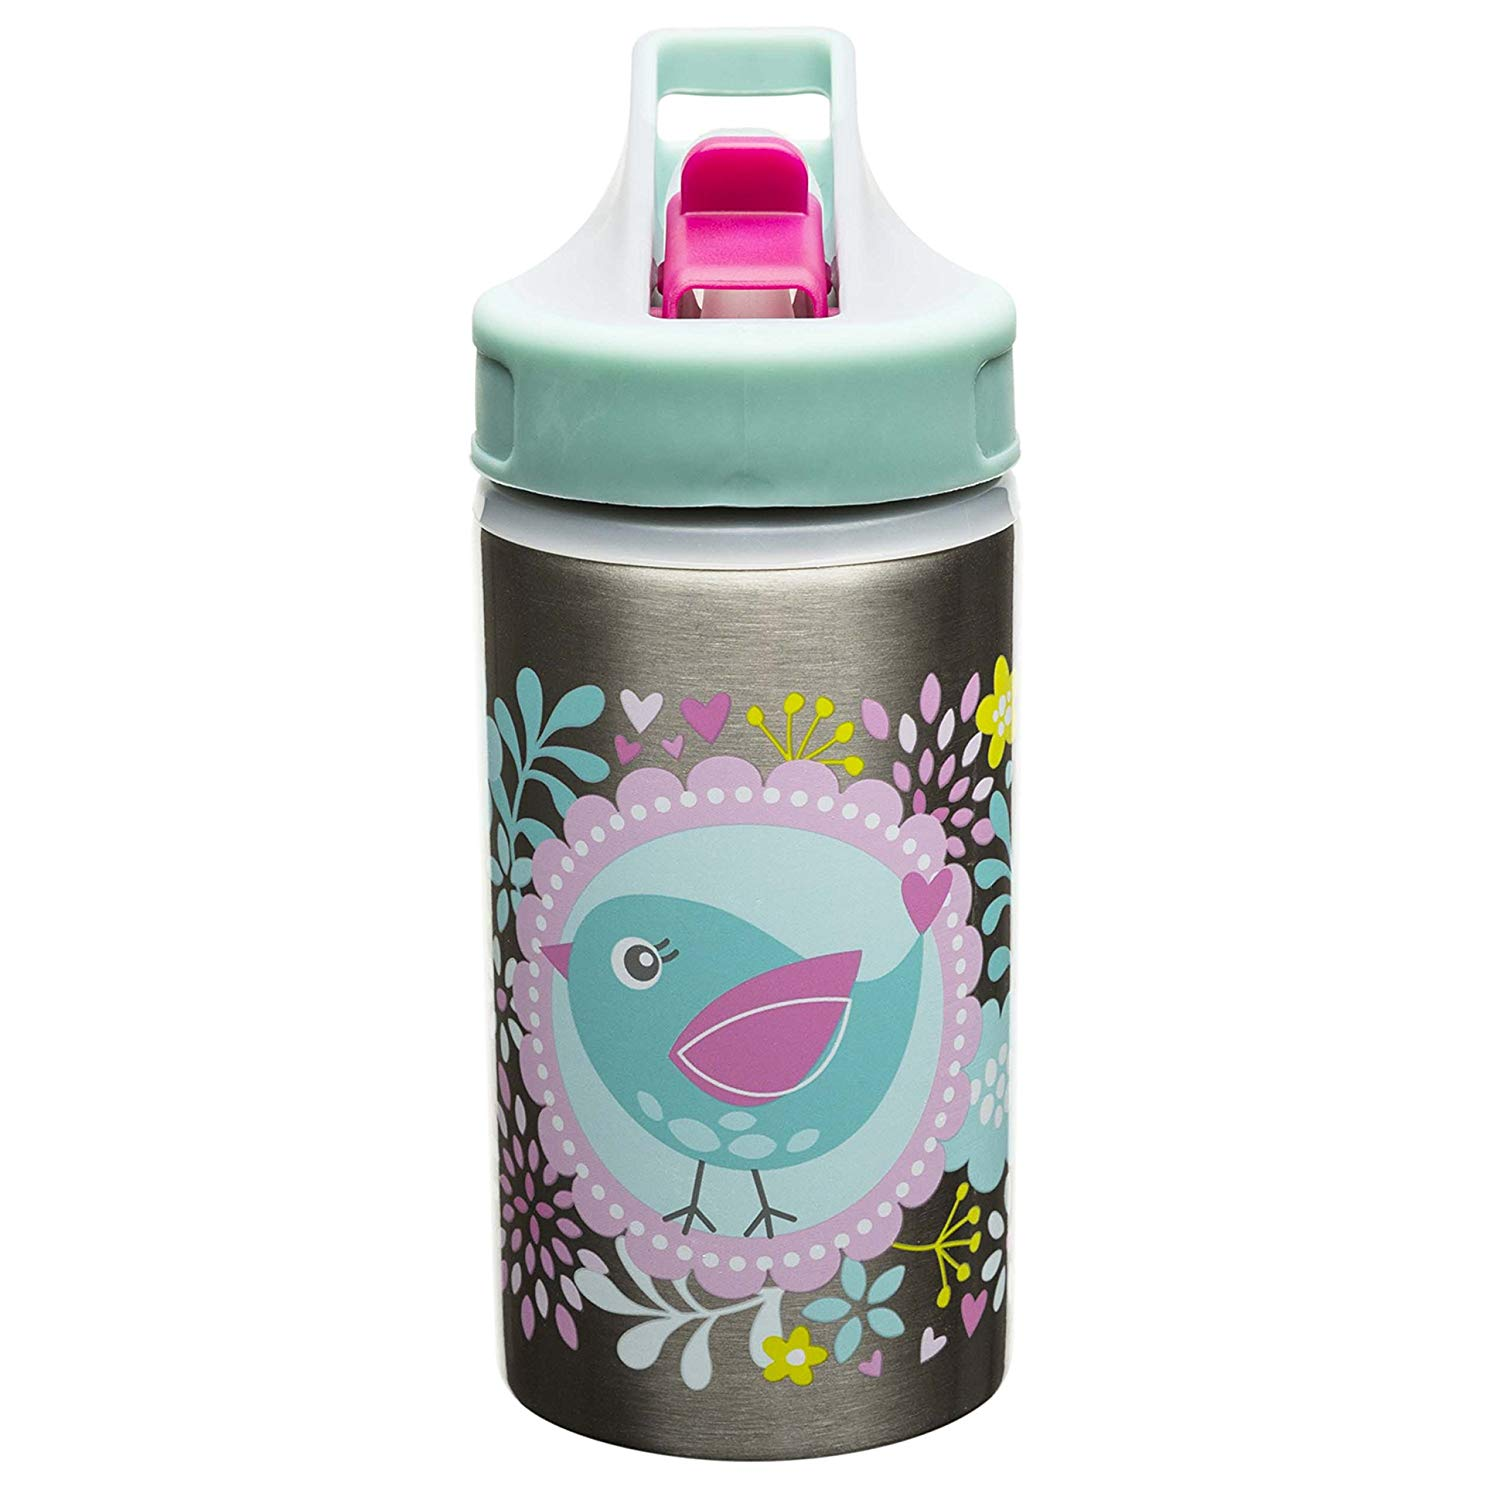 2e2c9d6948 Designs Toddlerific Stainless Steel Sports Water Bottle with Tweet  Graphics, Flip-up